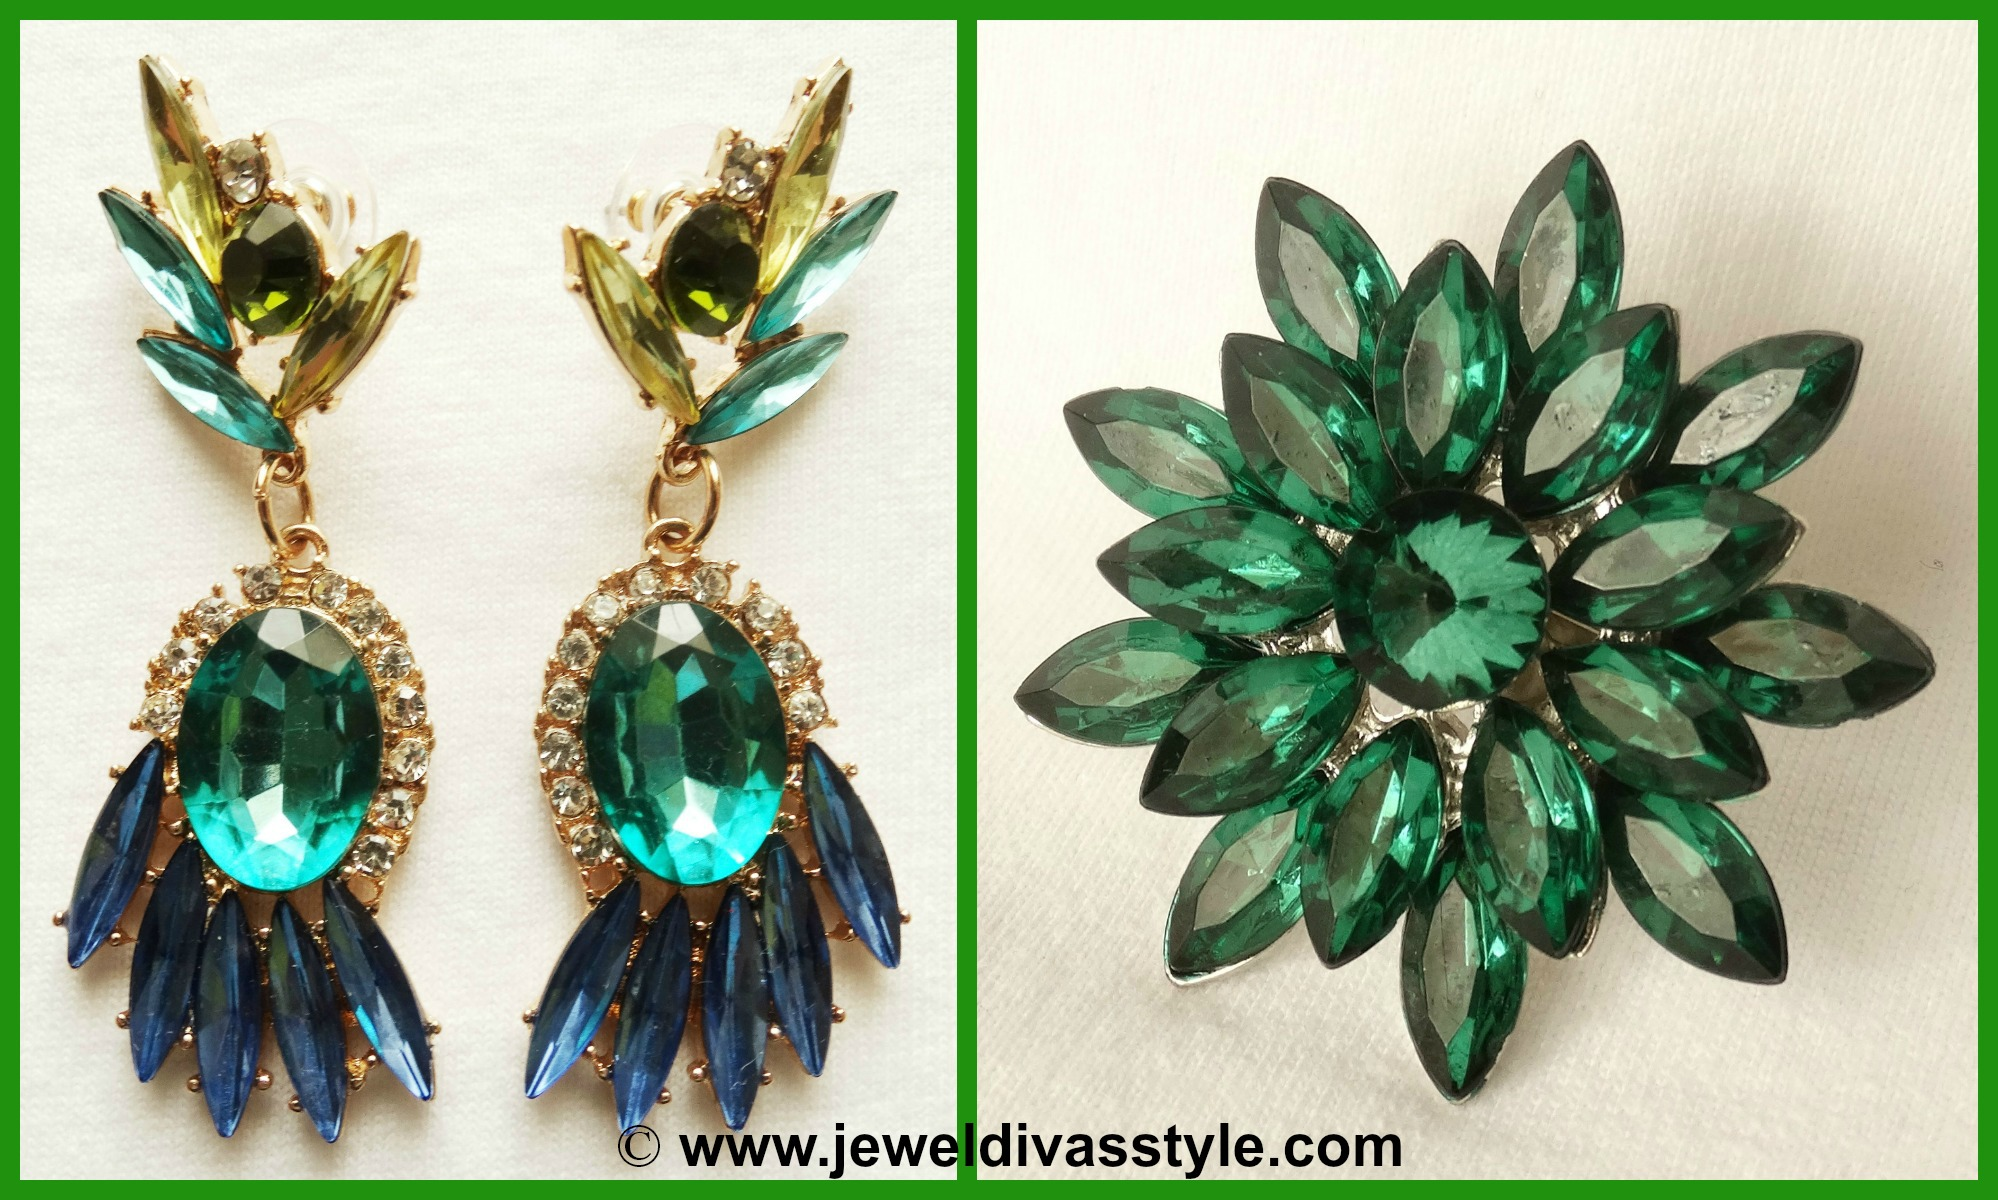 MY PERSONAL COLLECTION: Brand new Green jewels